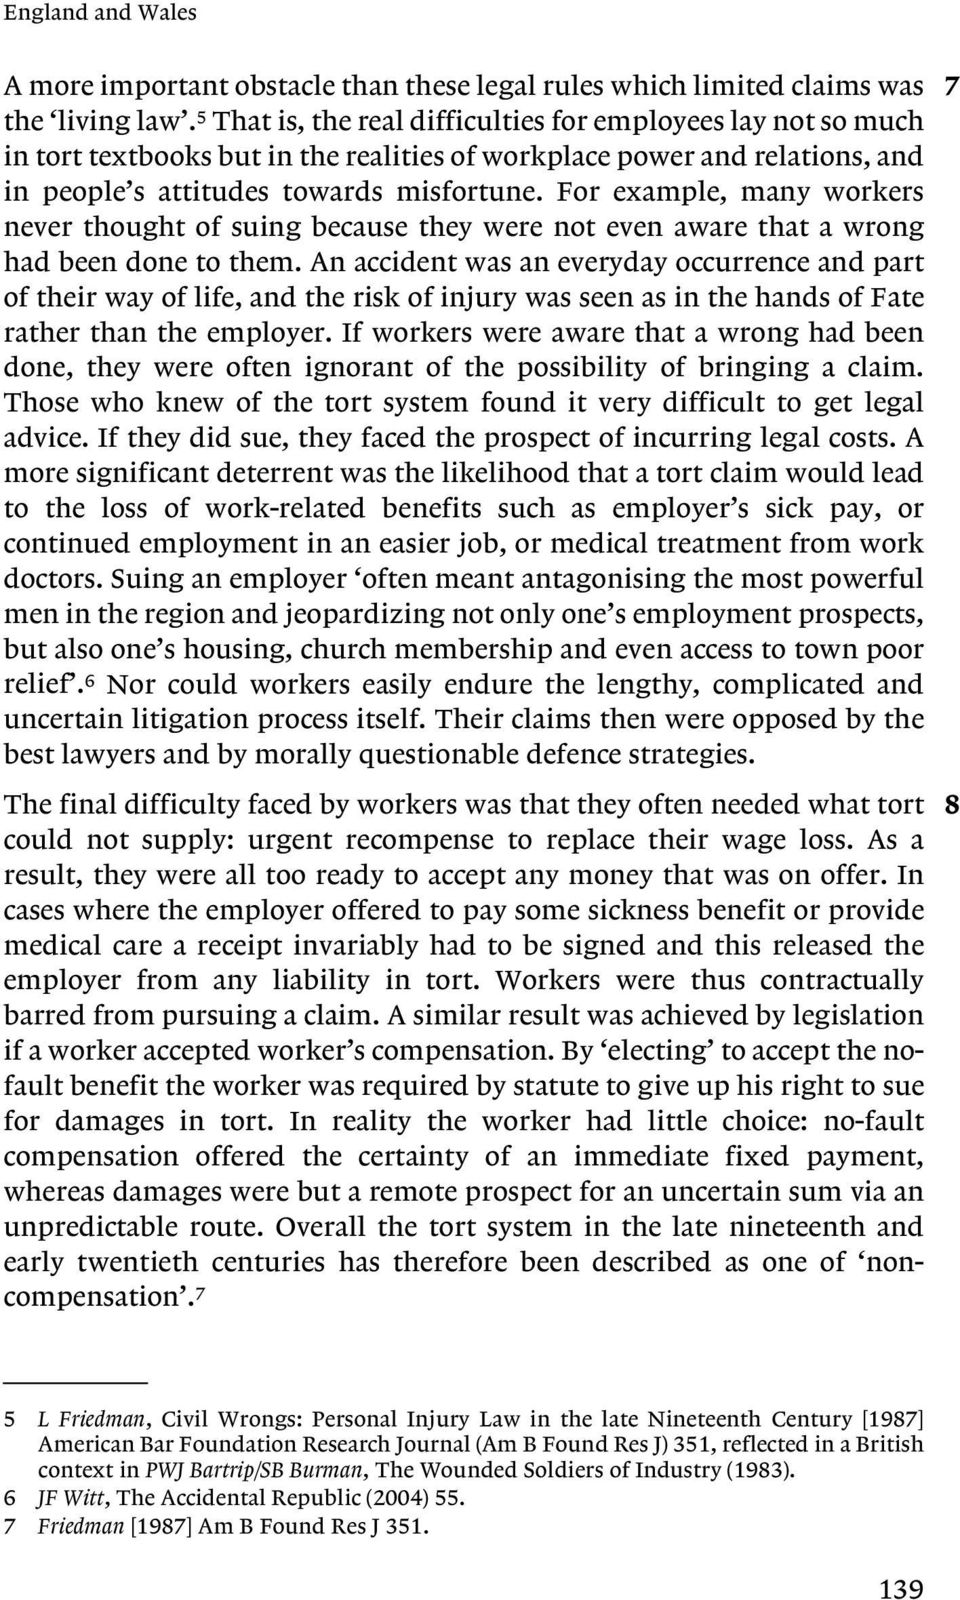 For example, many workers never thought of suing because they were not even aware that a wrong had been done to them.